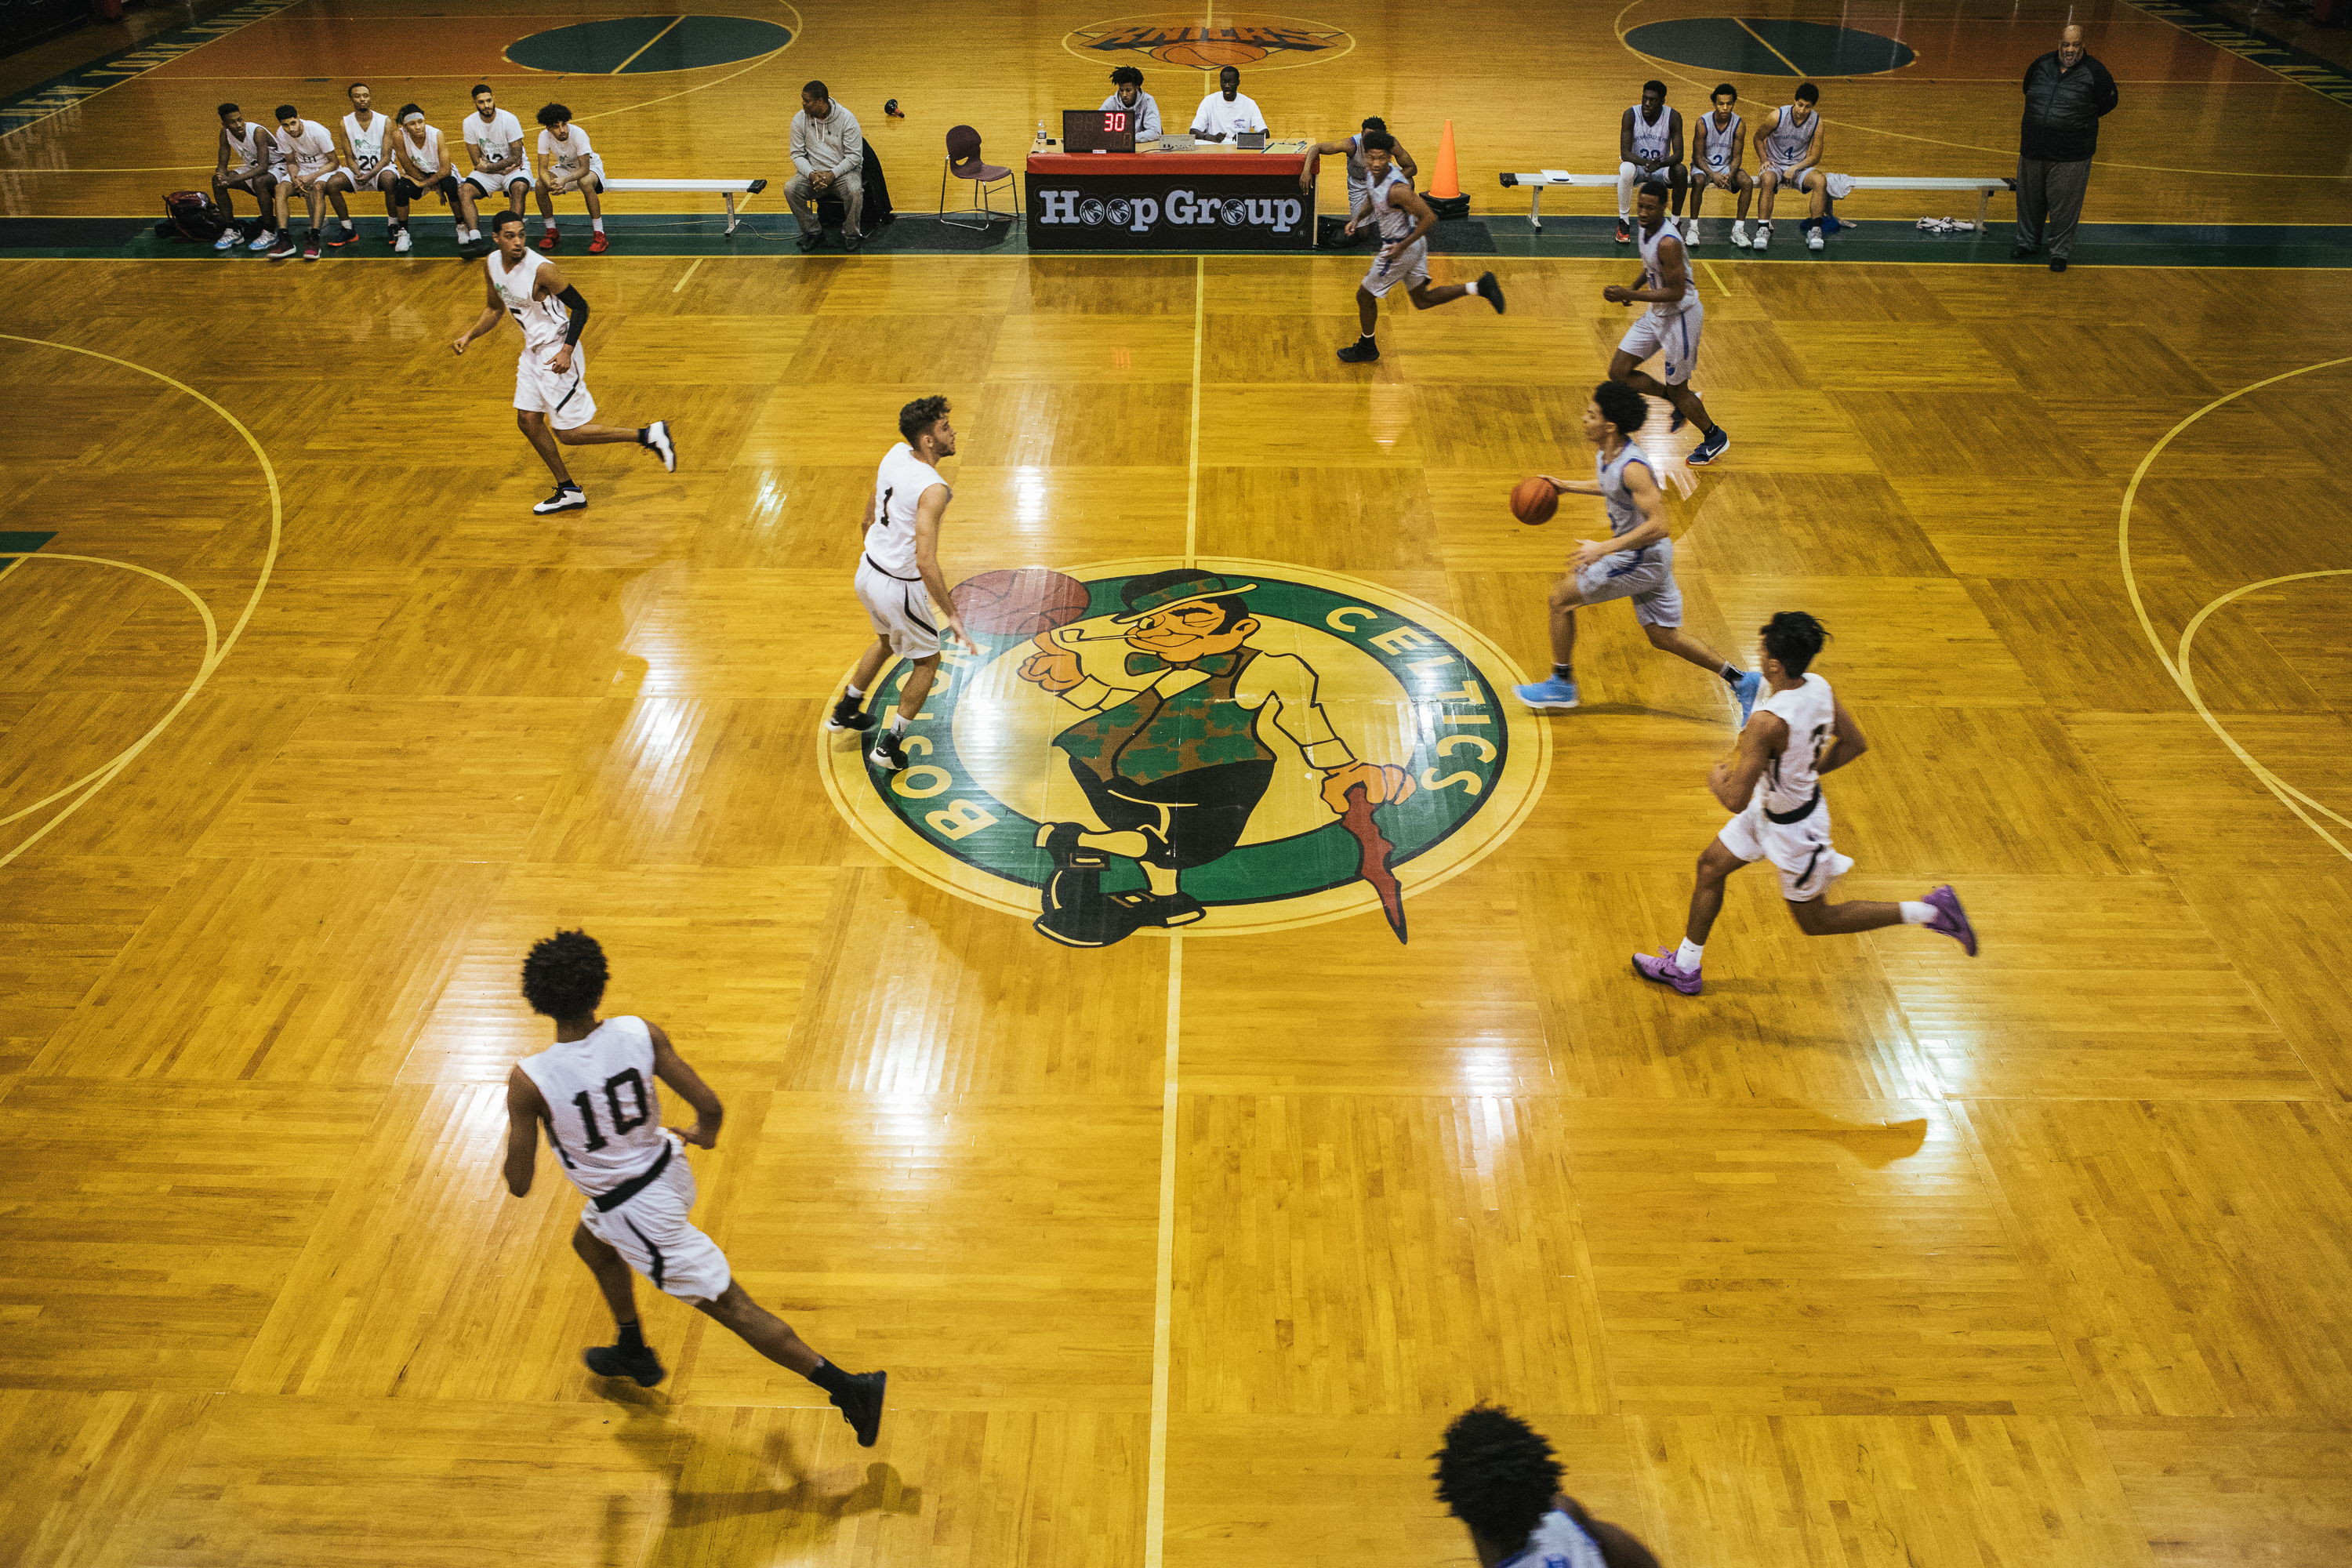 A new breed of basketball school arises for high school